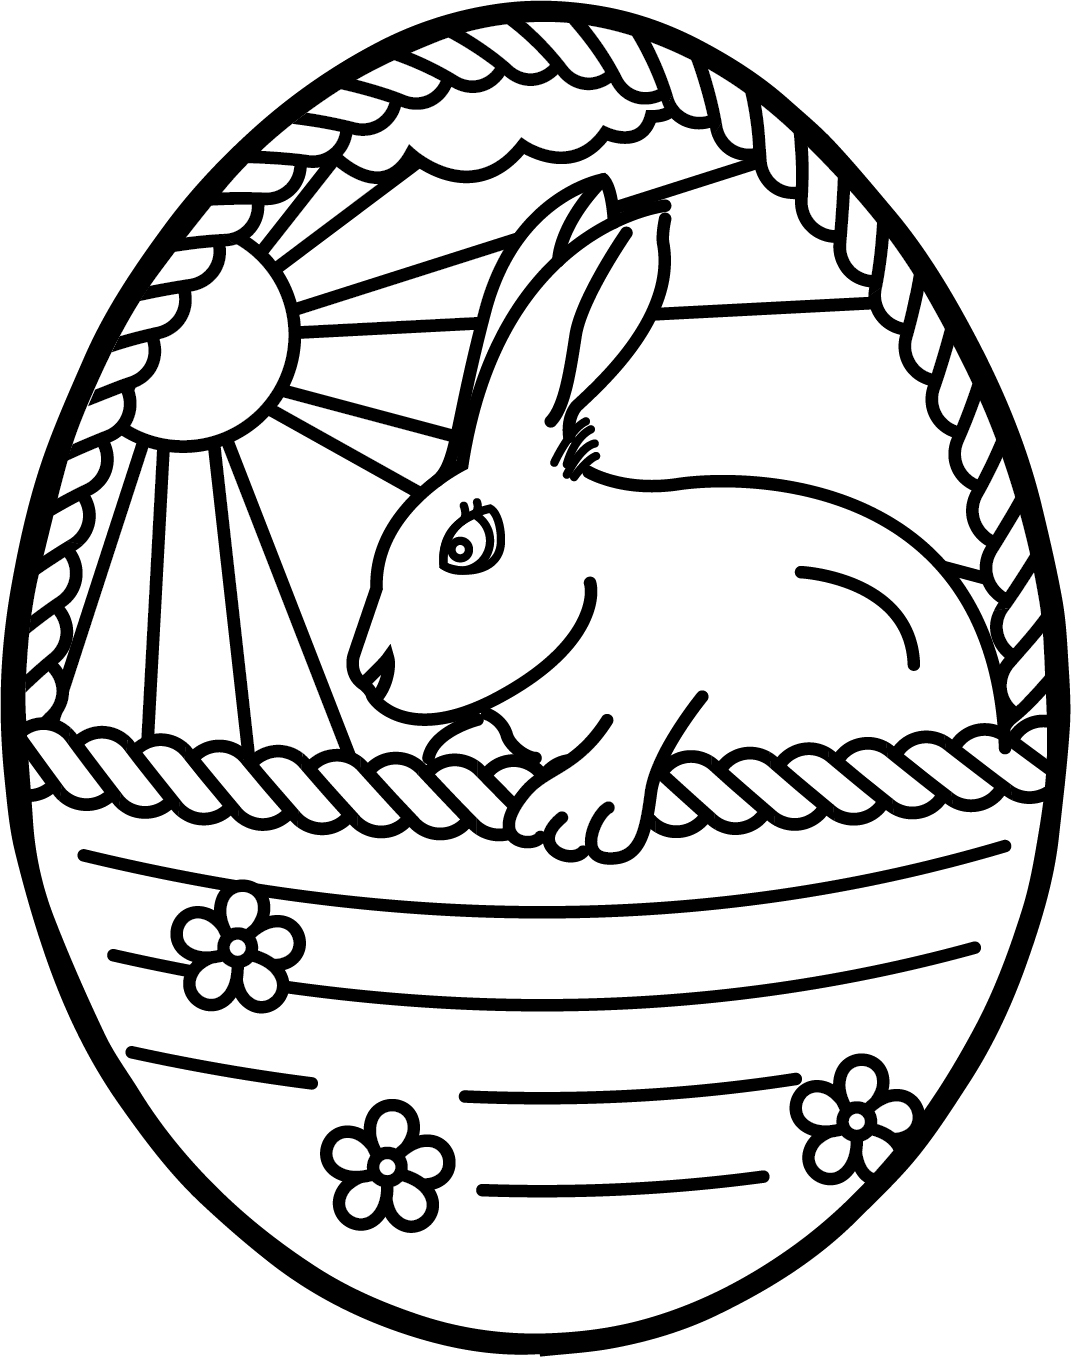 egg coloring page a basket of easter eggs coloring page netart egg page coloring